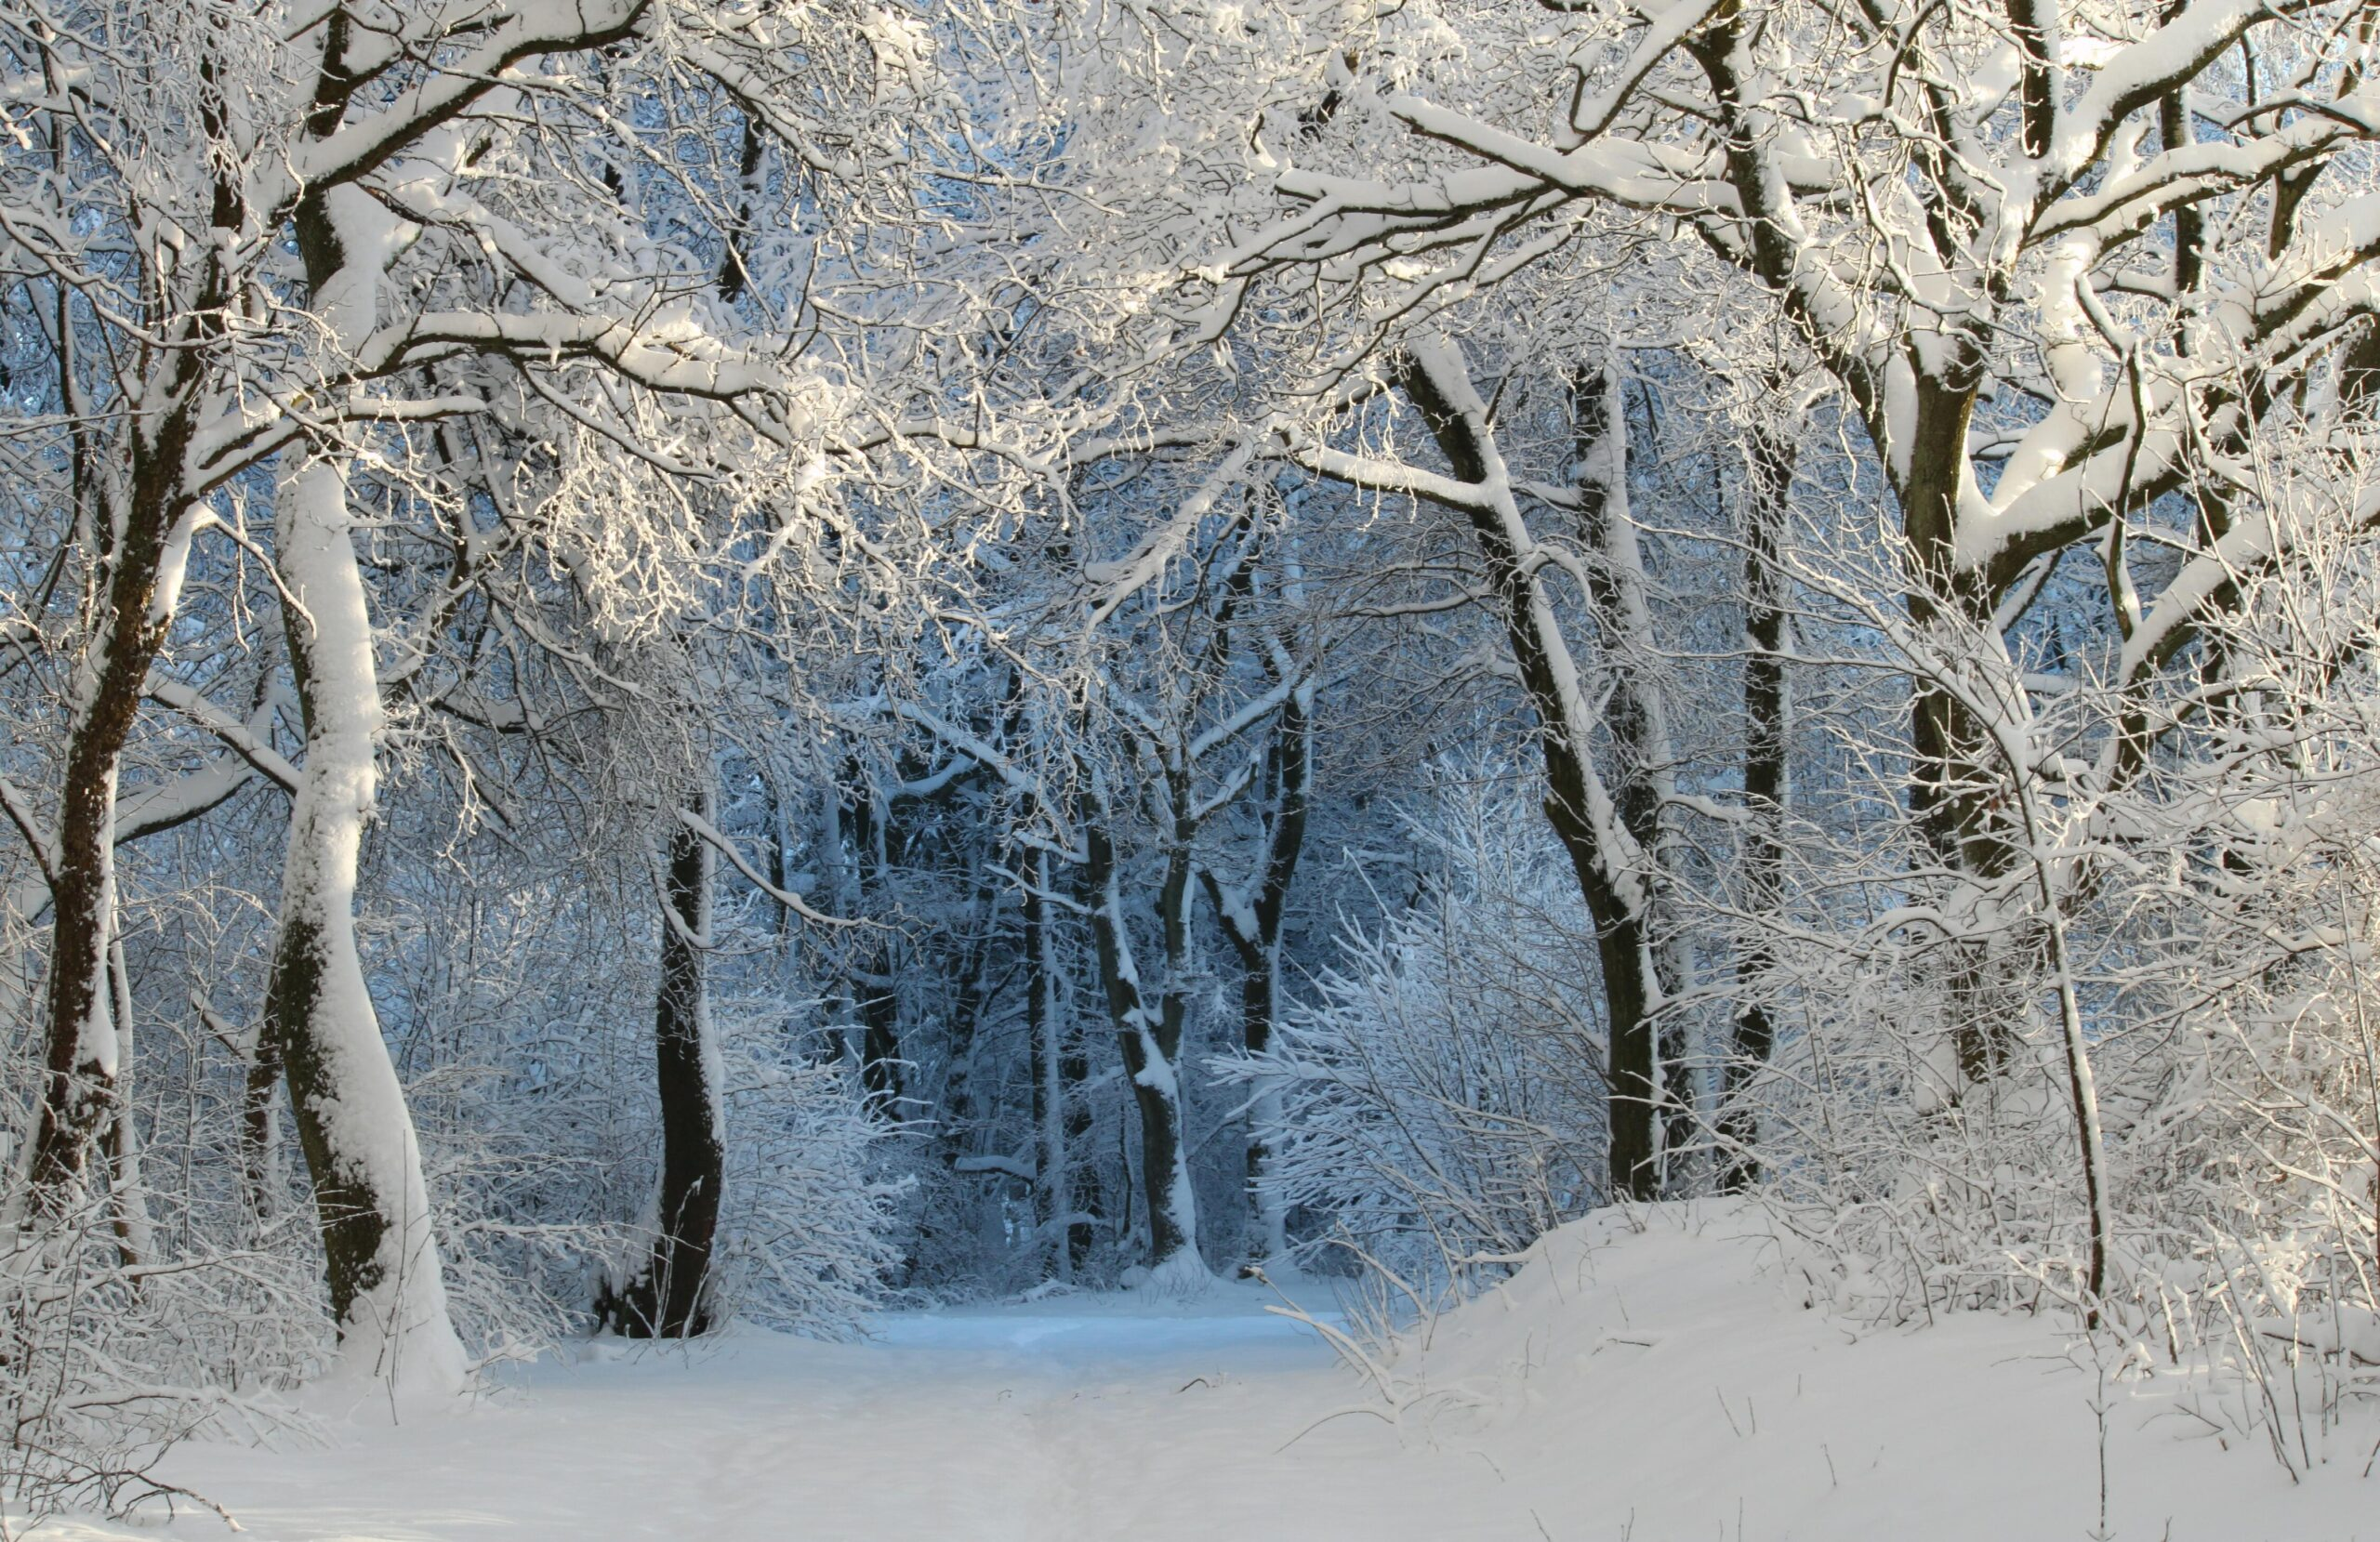 Snow-covered trees in shady forest